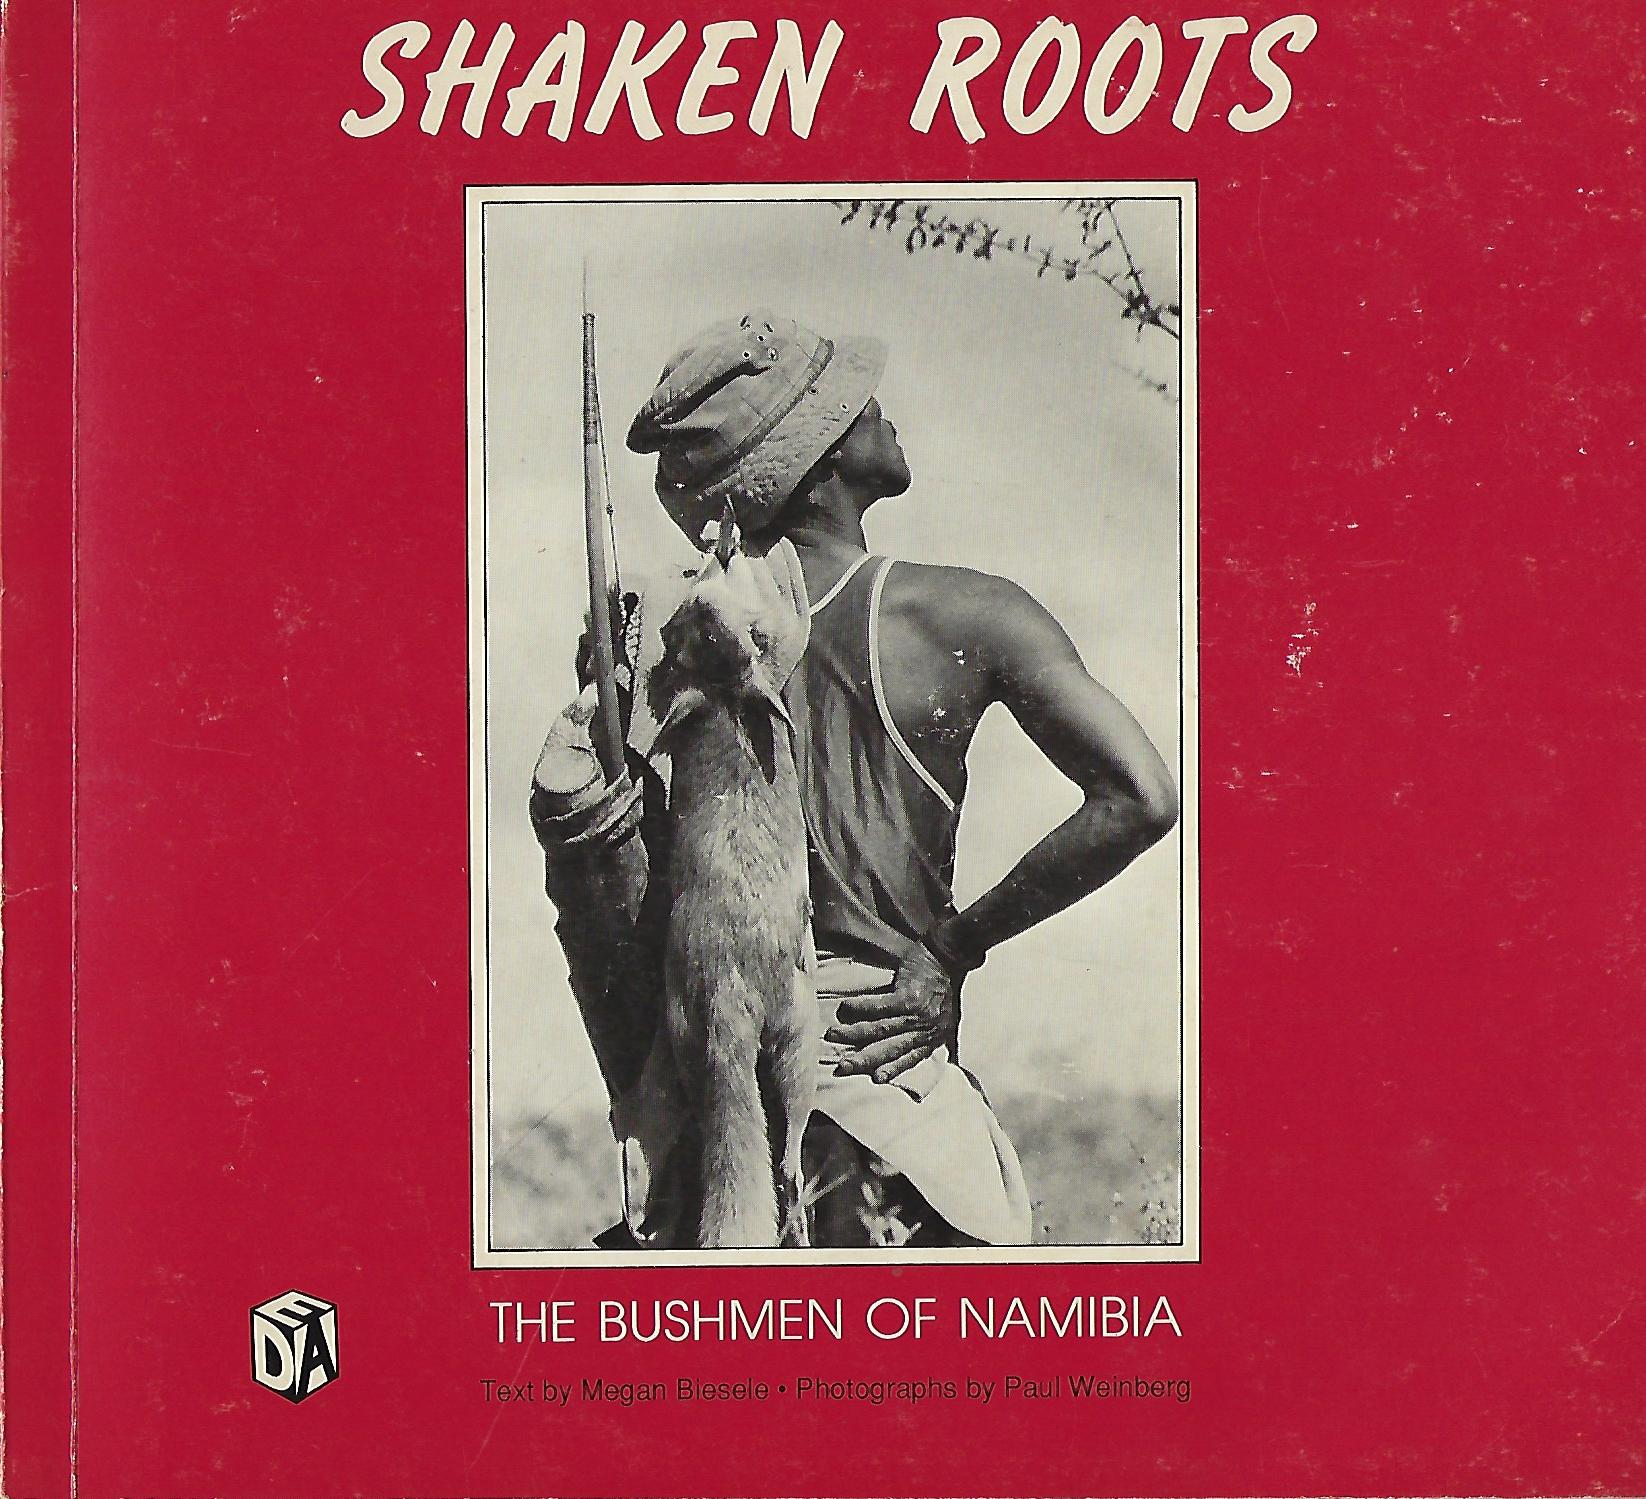 Shaken Roots: The Bushmen of Namibia (1989)